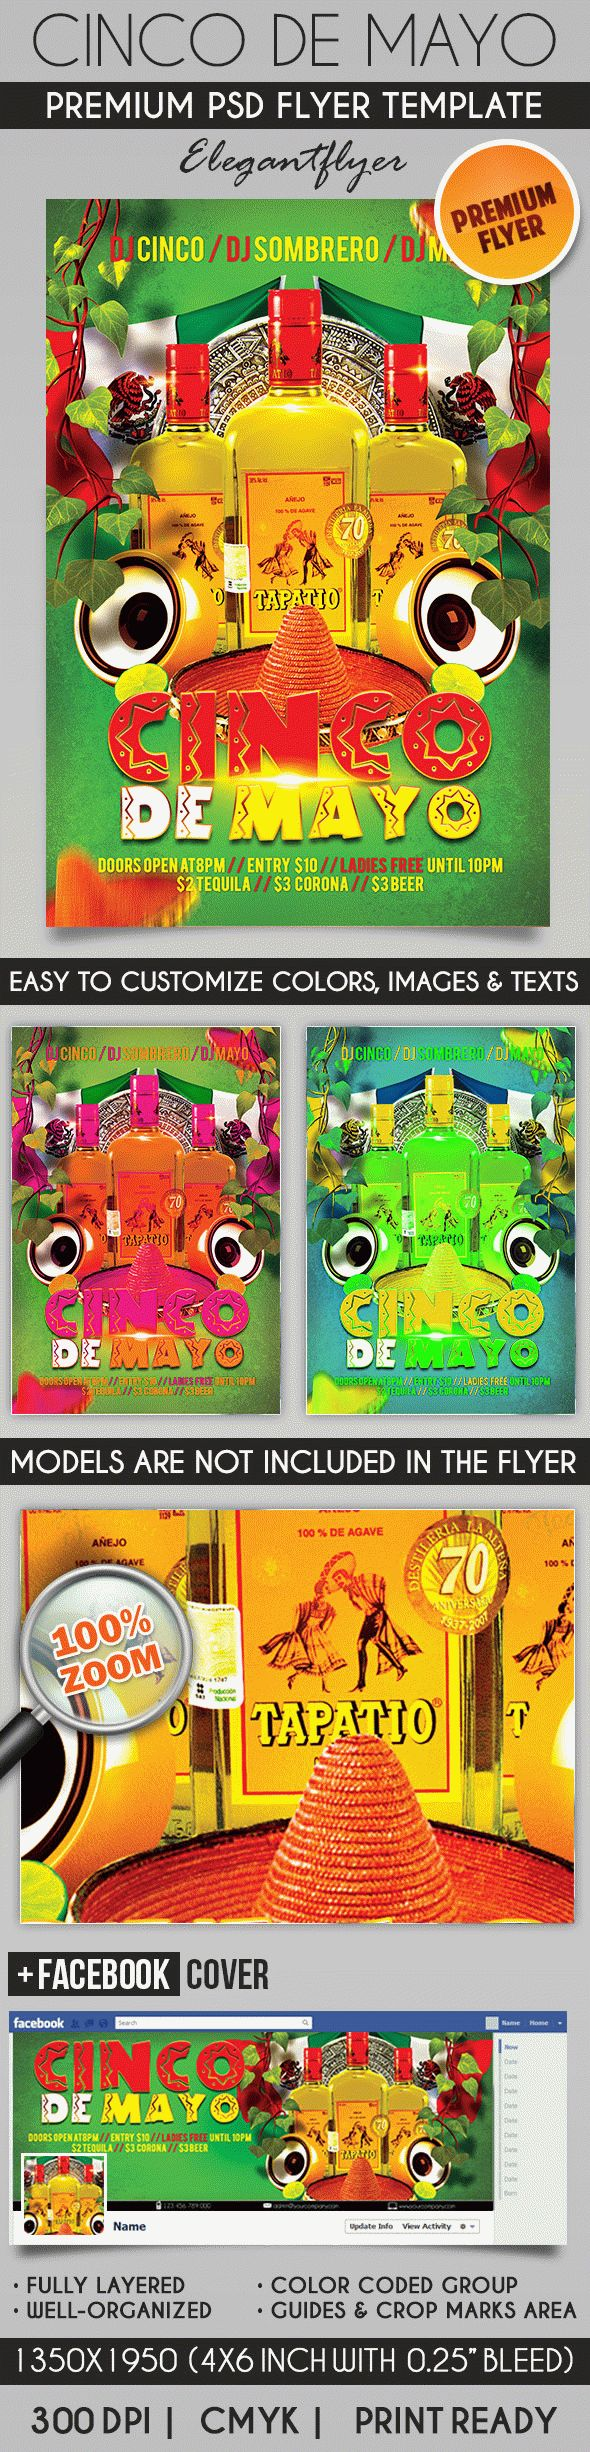 Happy Cinco de Mayo PSD Flyer